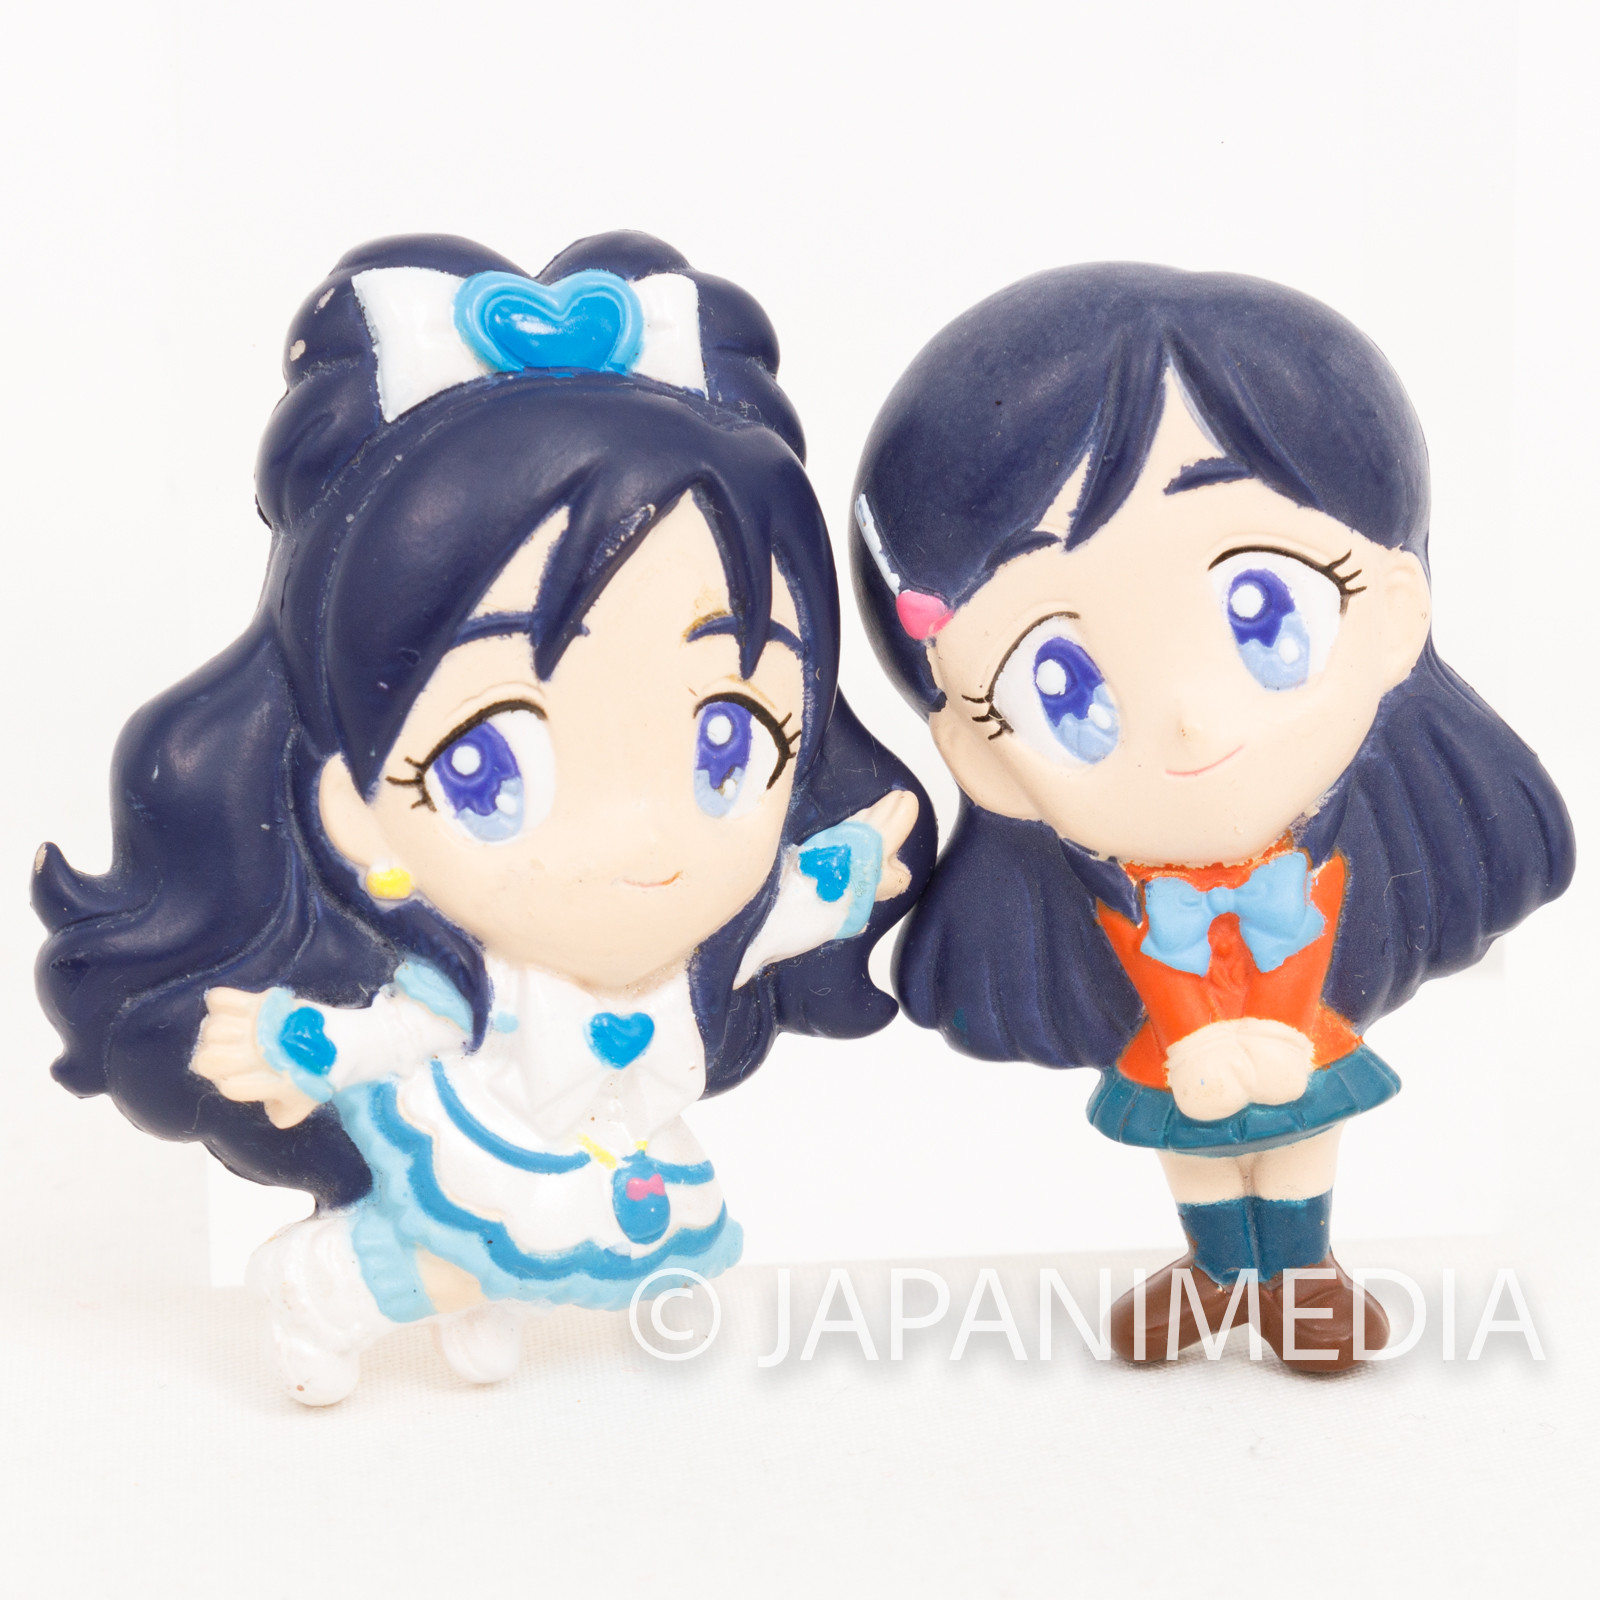 Futari wa Pretty Cure Max Heart Cure Mini Magnet Set Cure White Yukishiro Honoka